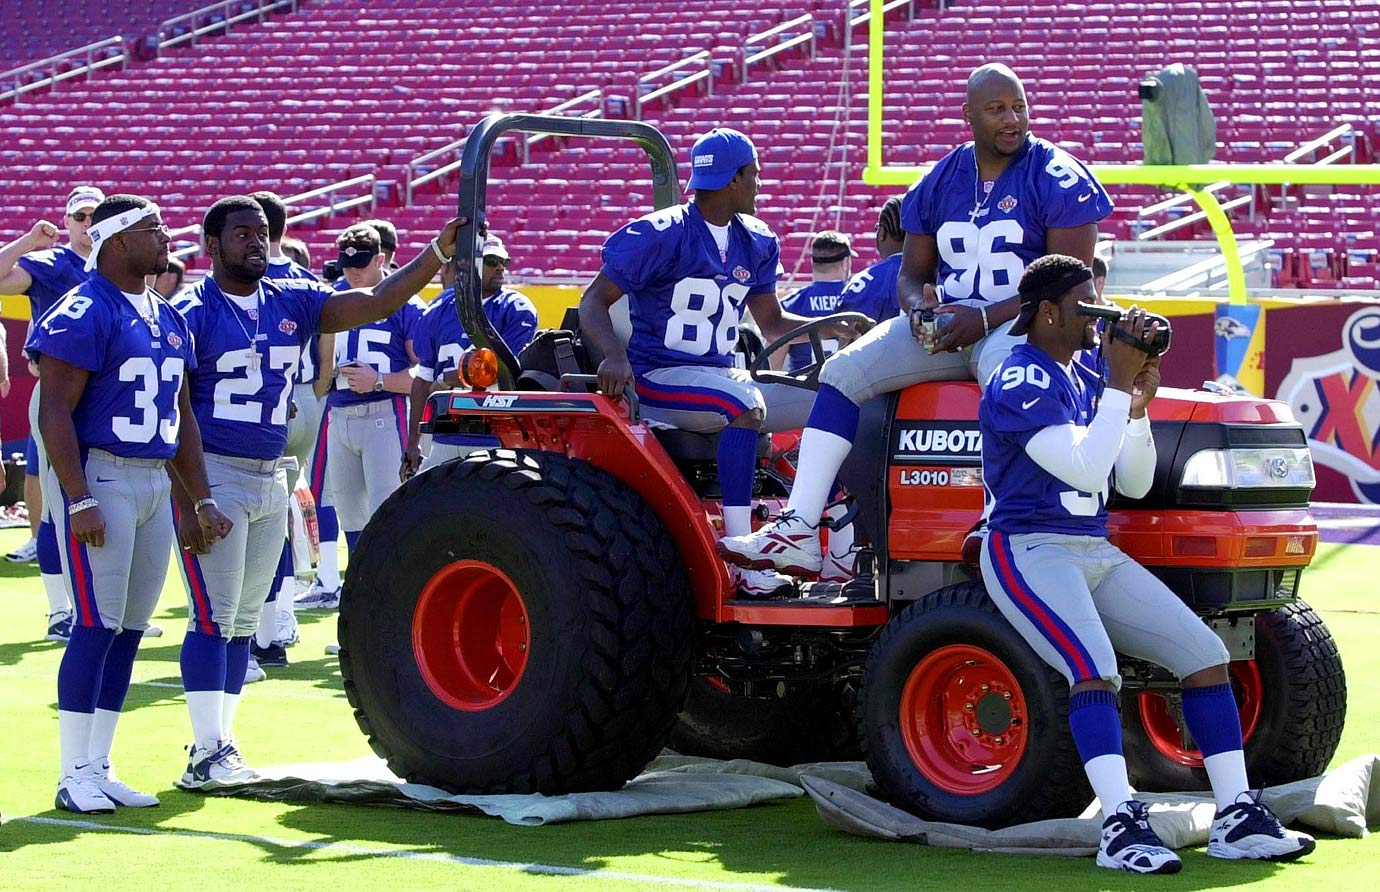 Members of the New York Giants play around on a tractor during Super Bowl XXXV Media Day in Tampa. The Giants wound up going home disappointed as they were beaten by the Ravens, 34-7.